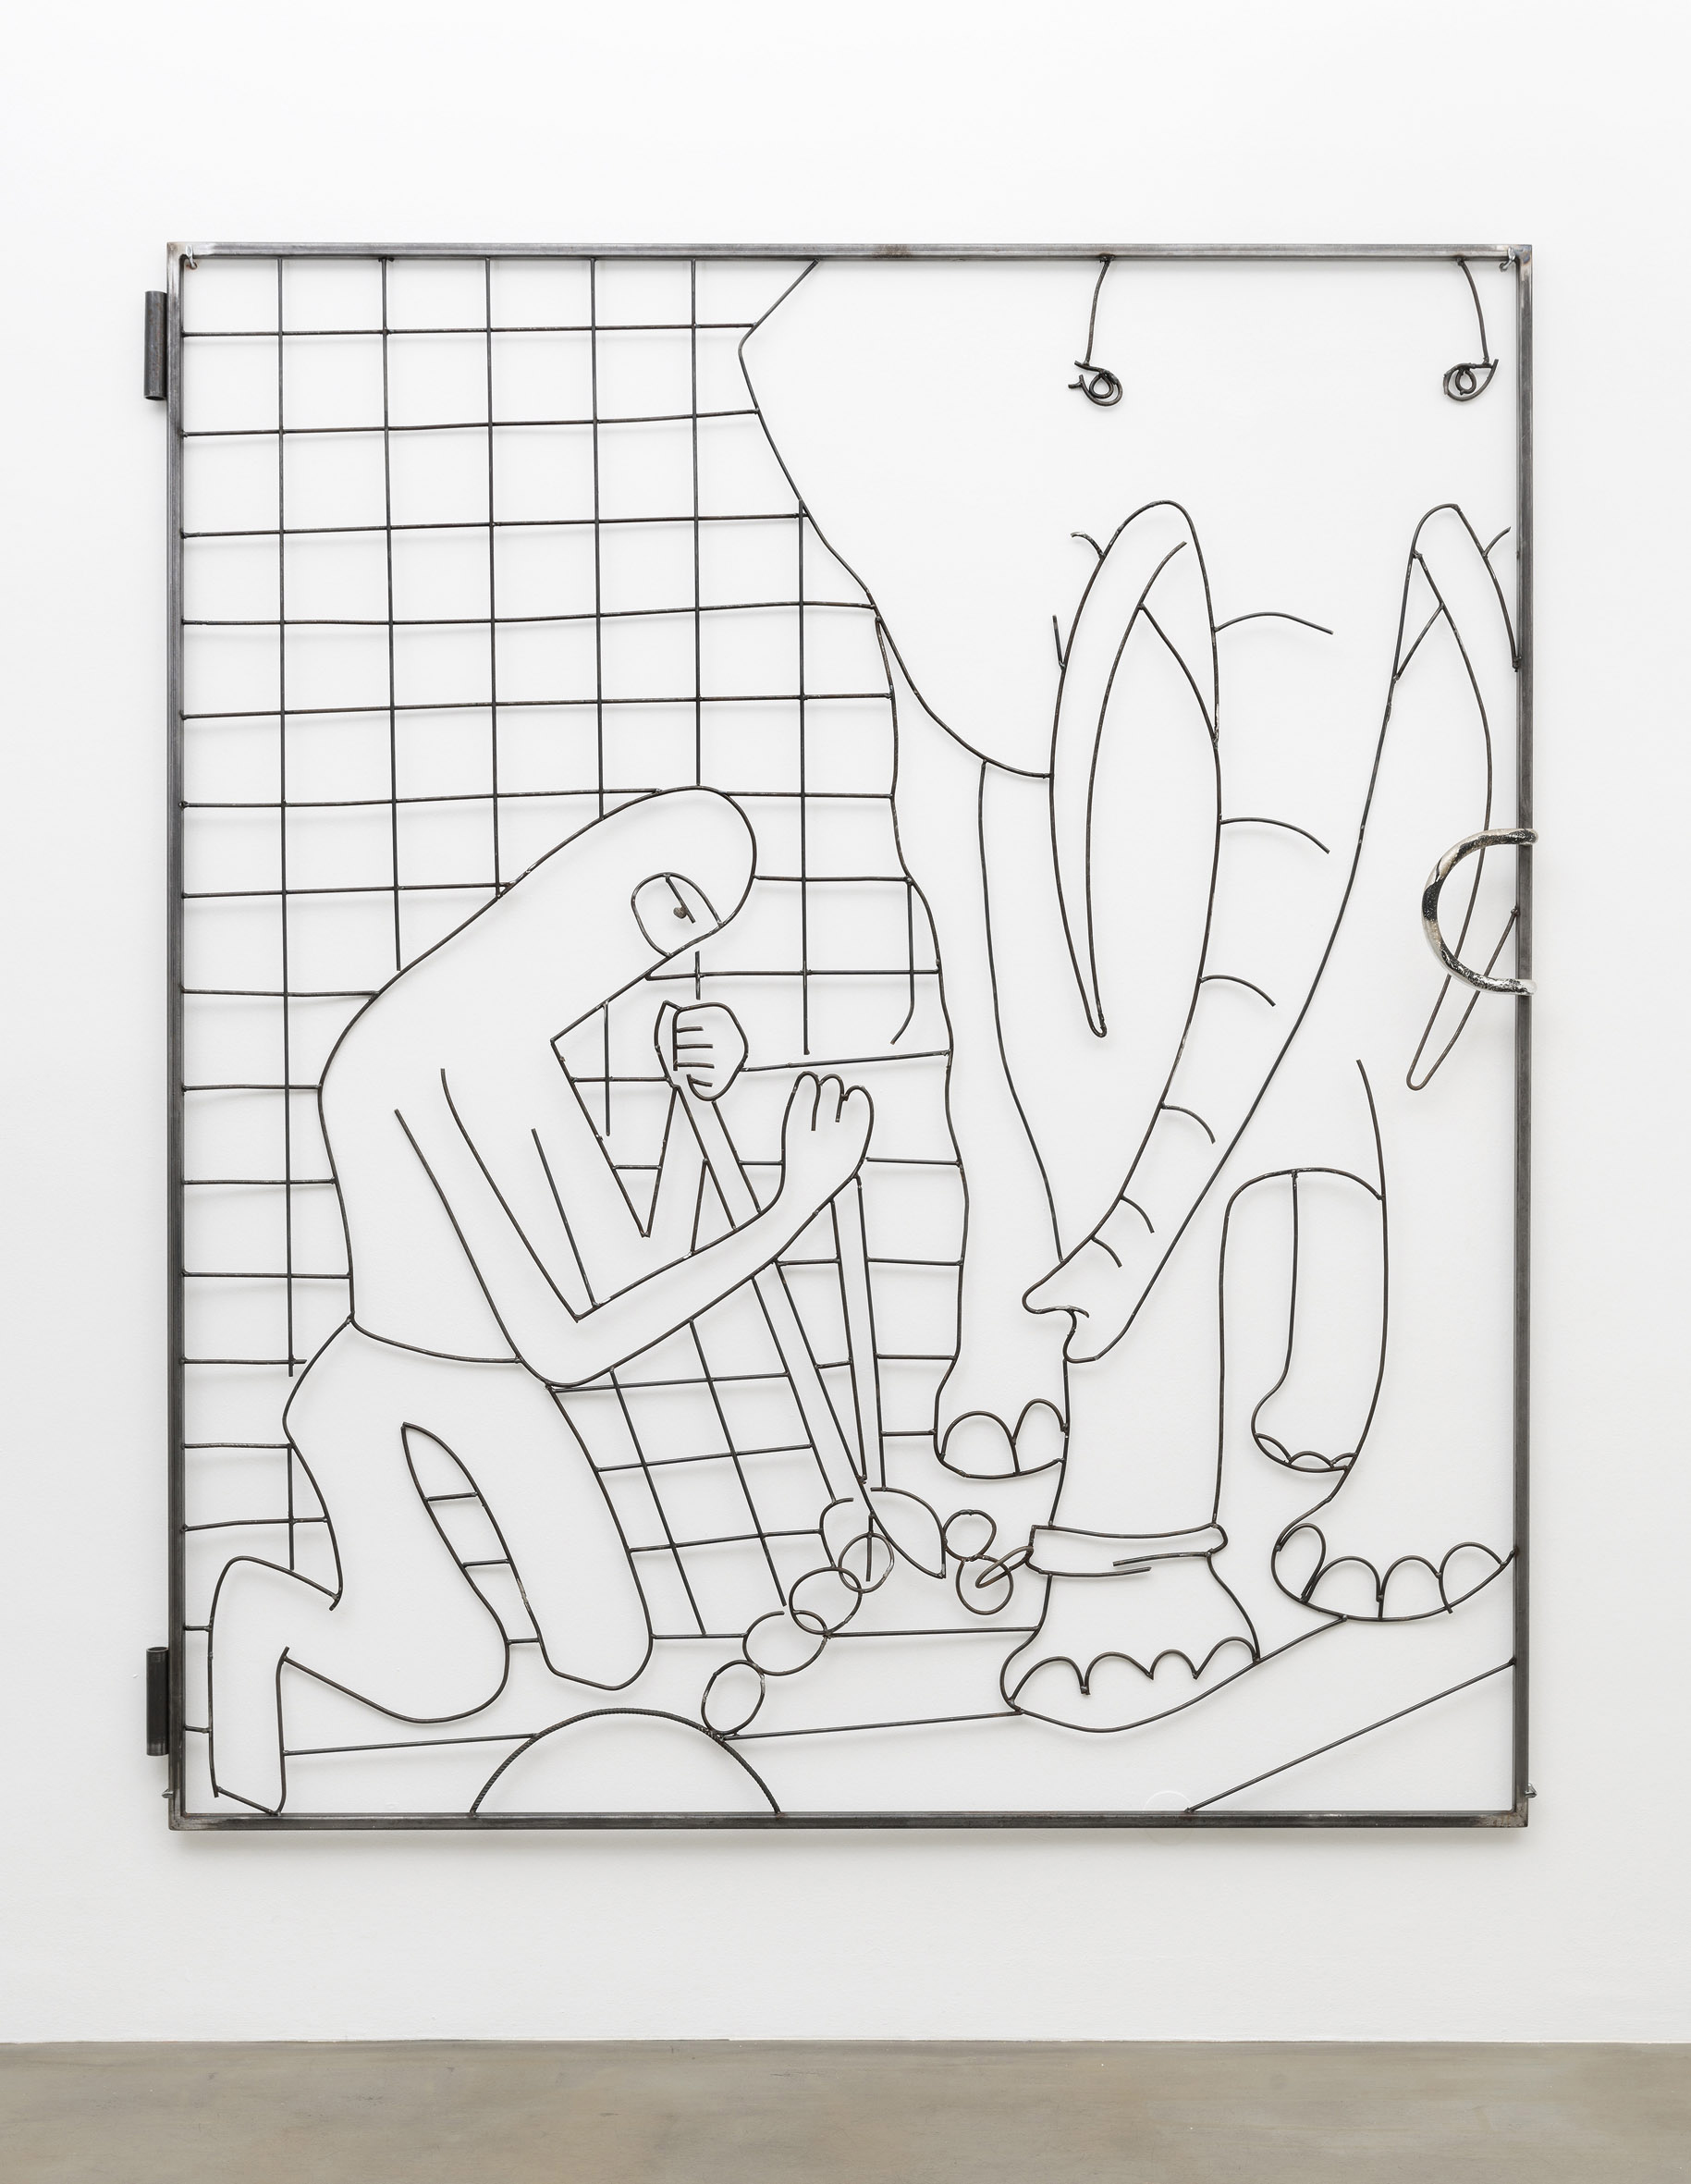 Lin May Saeed, The Liberation of Animals from their Cages XVII / Olifant Gate, 2016, Tool steel and lacquer, Courtesy Jacky Strenz, Frankfurt.; Nicolas Krupp, Basel; The artist, Foto: Wolfgang Günzel, Offenbach